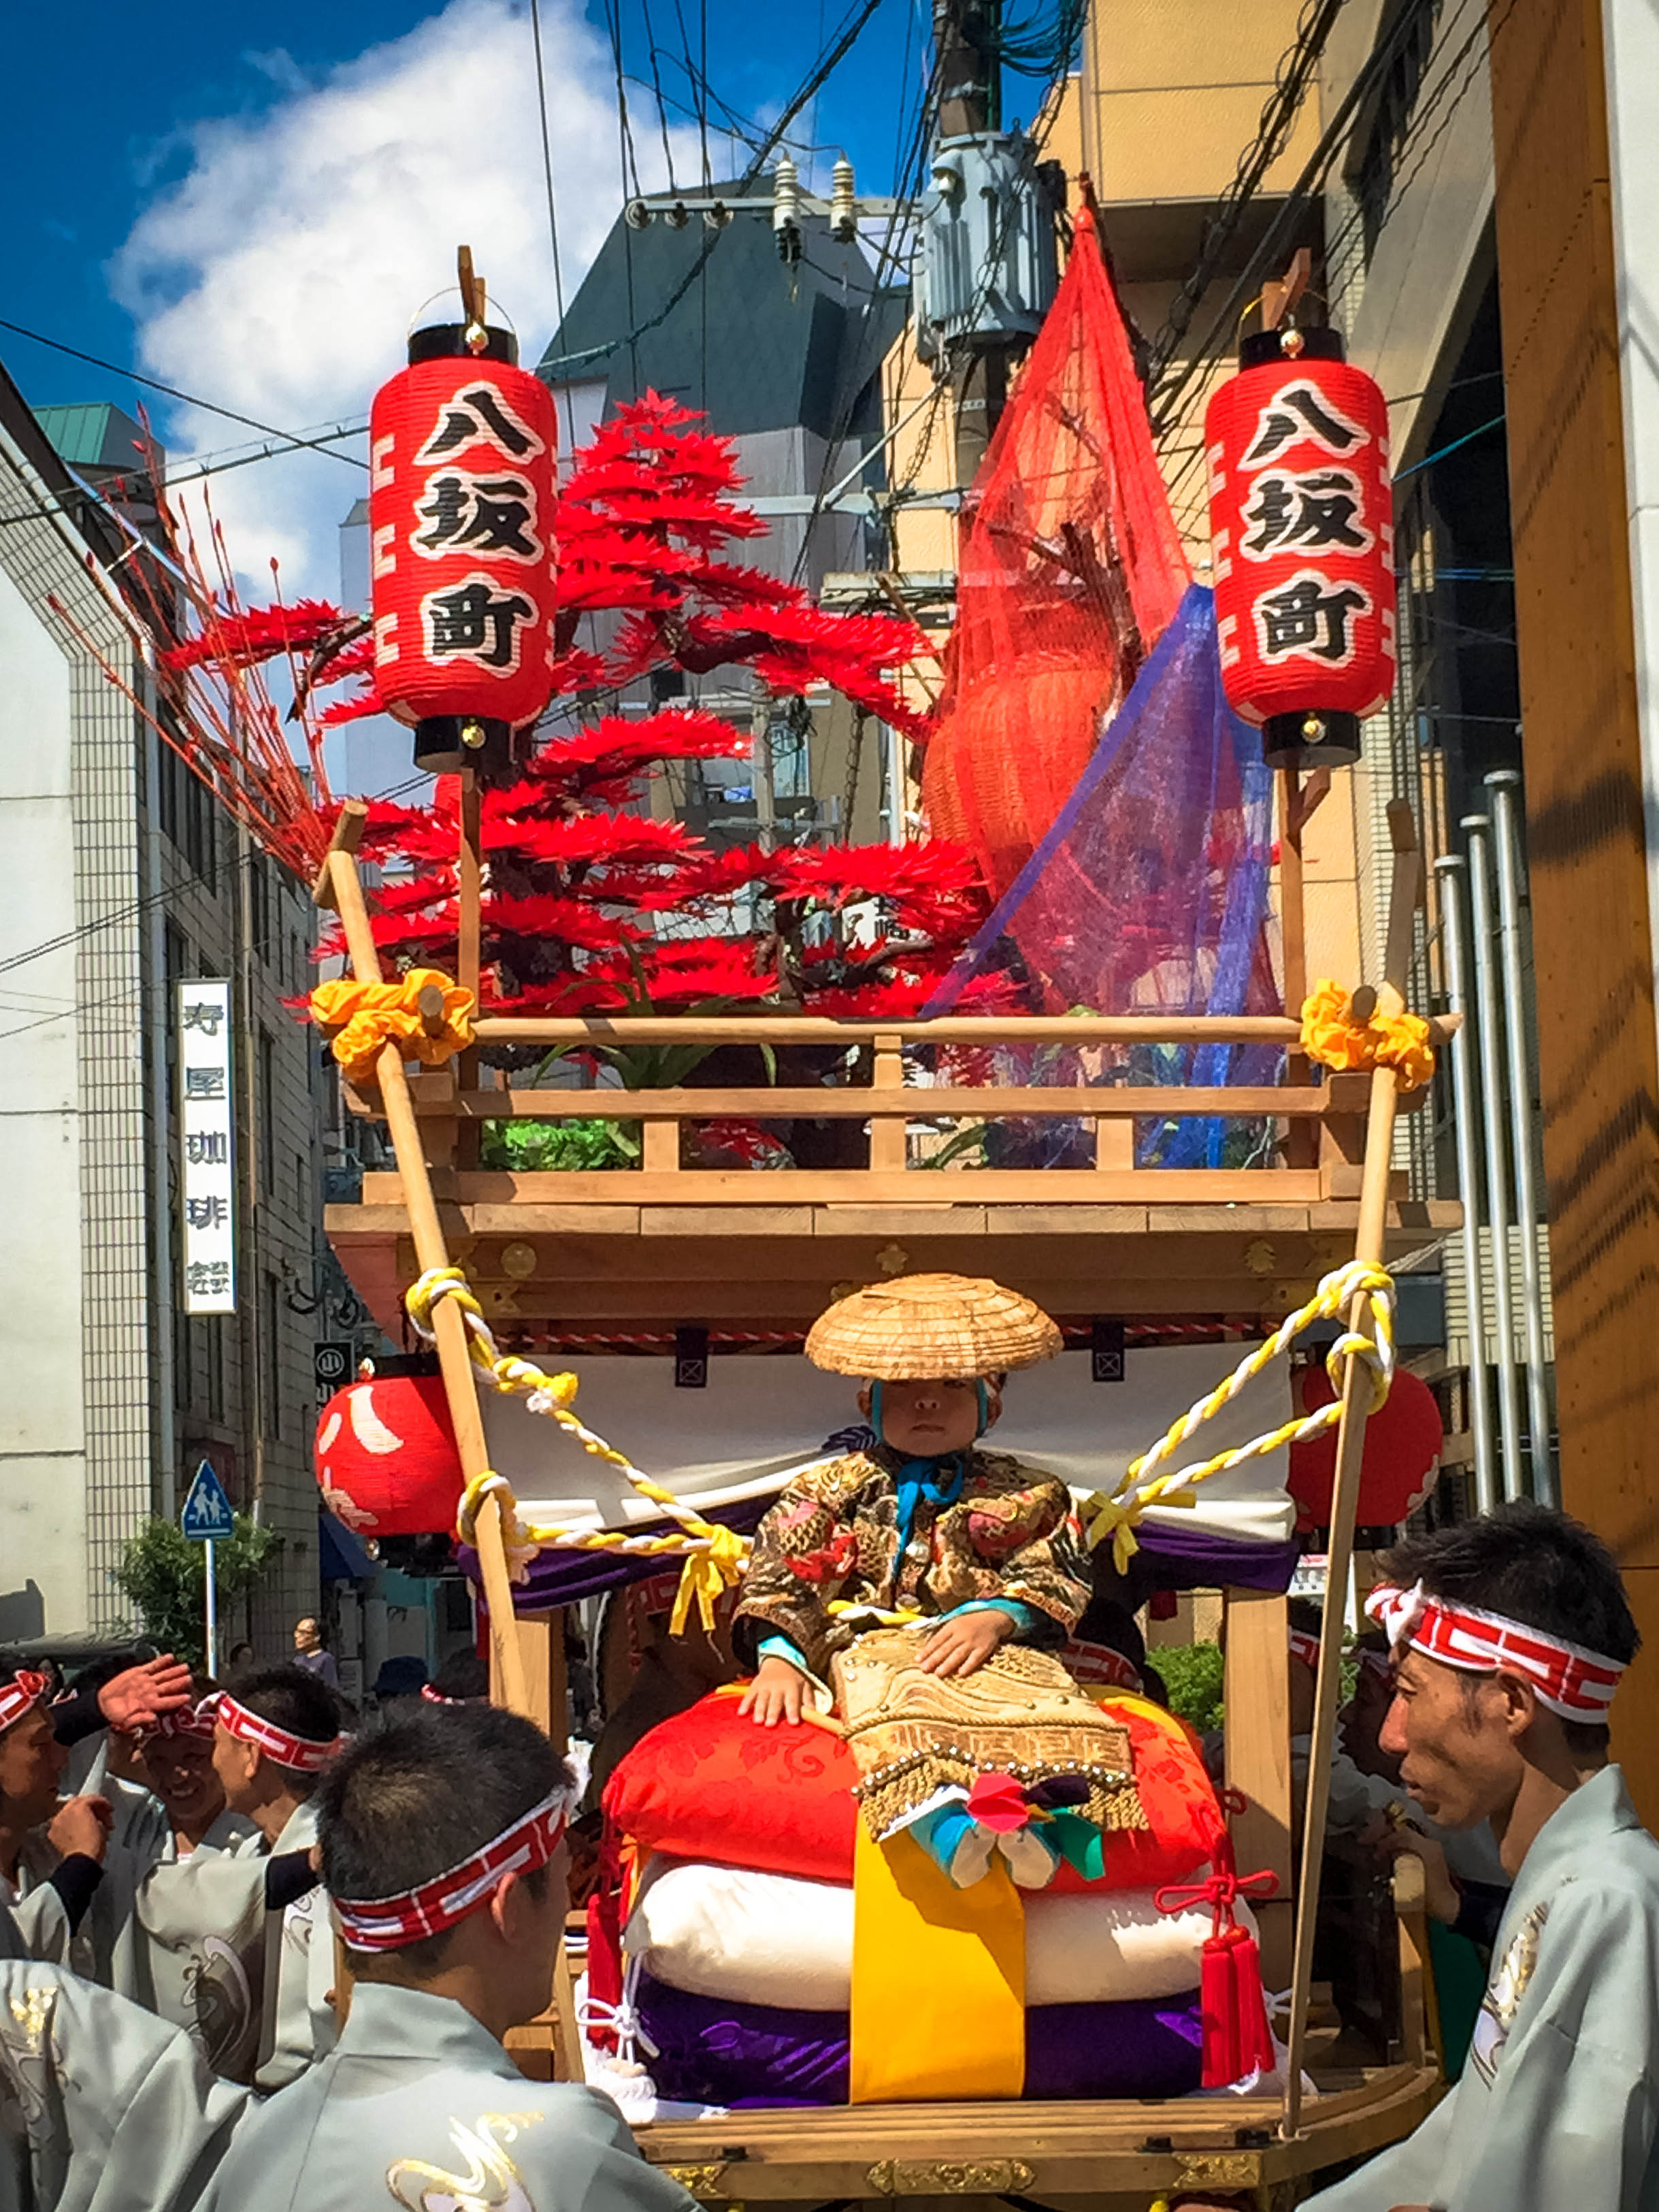 The best part was this one child being carried aloft a float sitting on no less than three massive pillows like the true supreme ruler he is on the inside.